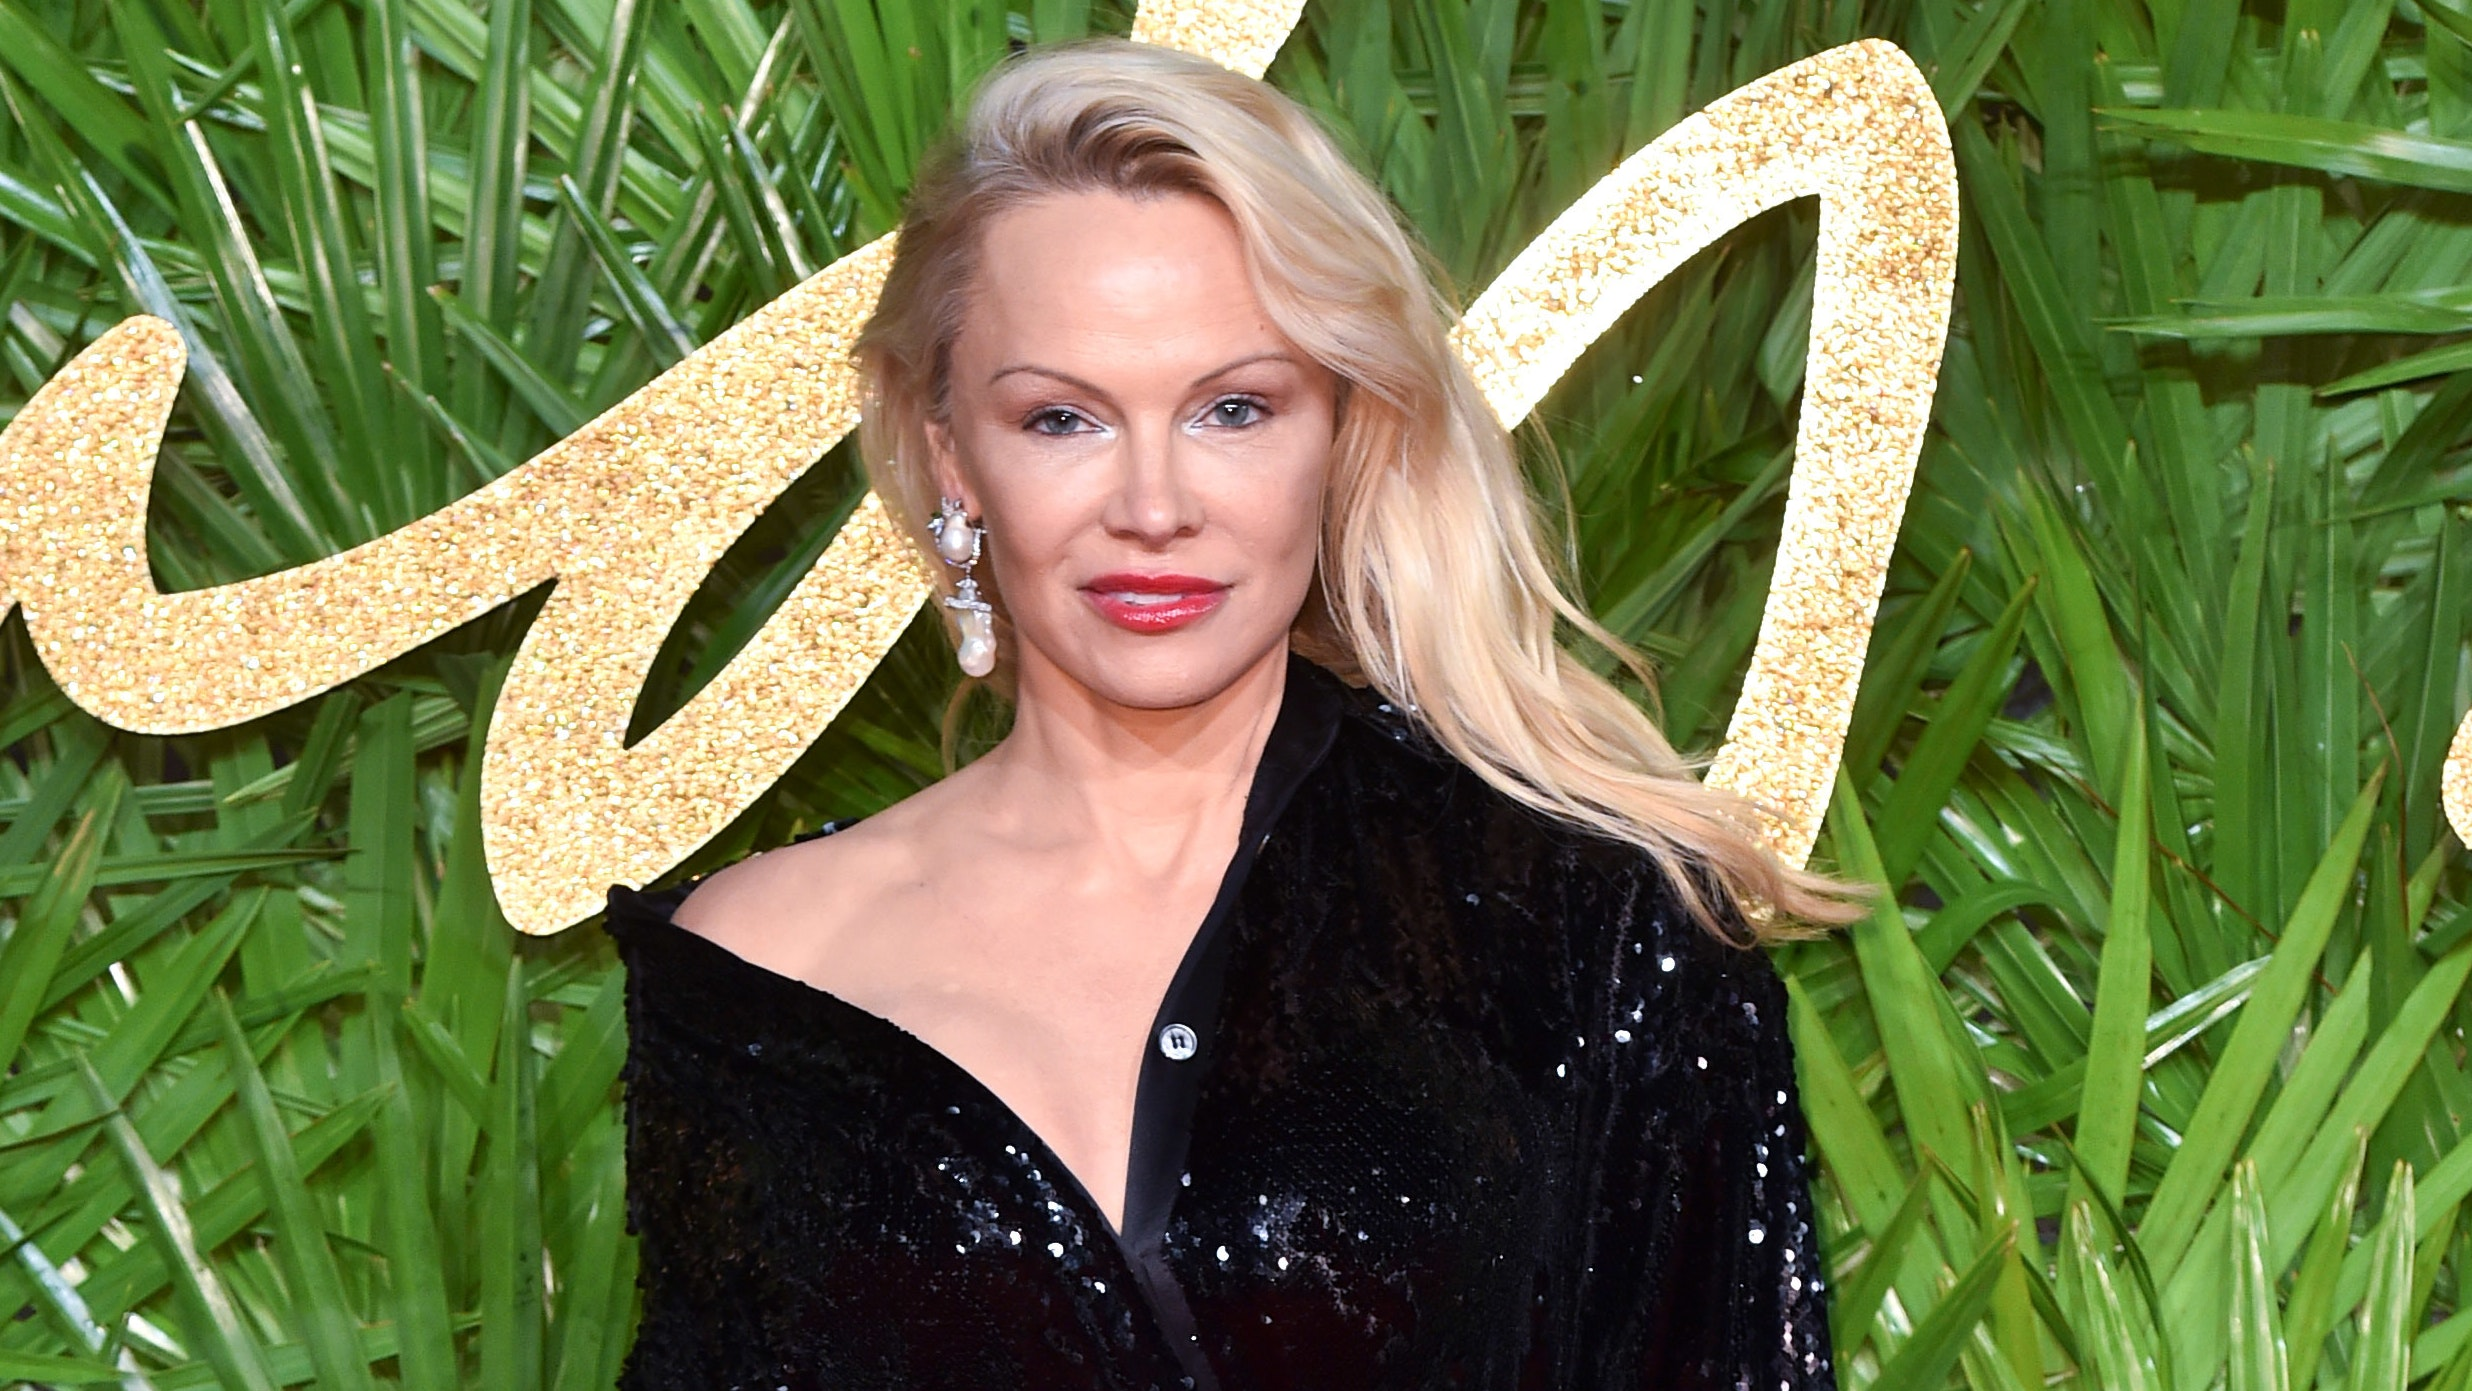 Image result for Pamela Anderson  new photo shoots 2020